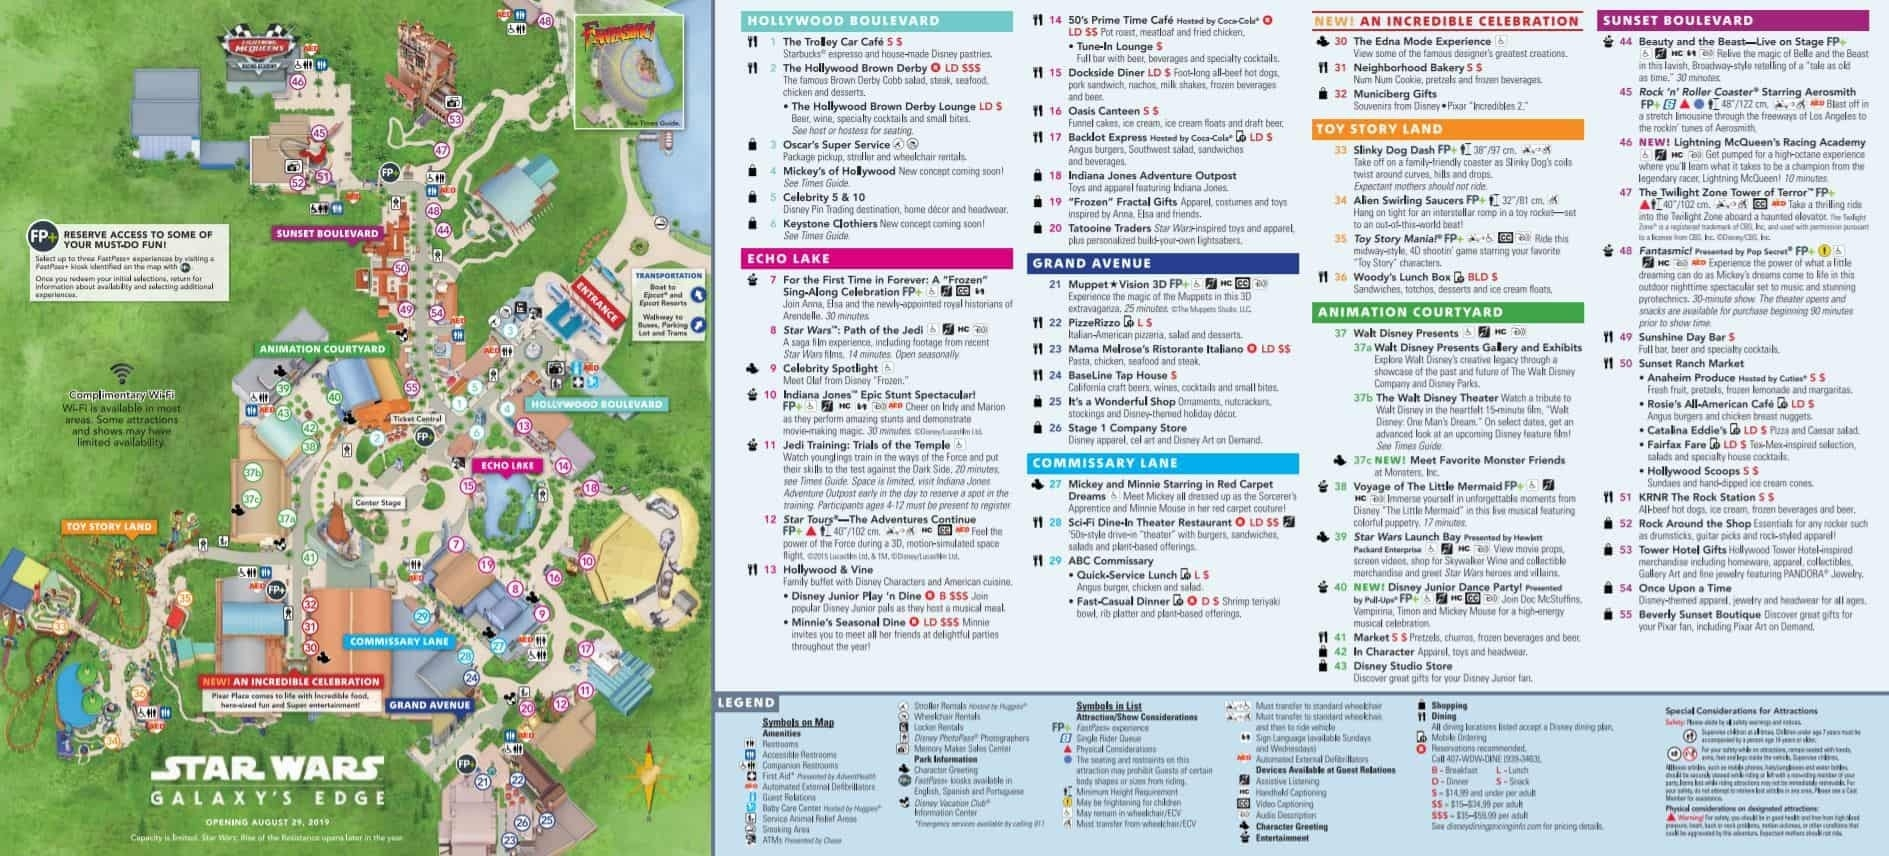 Disney World Maps - Download For The Parks, Resorts, Parties  Printable List Of Disney World Rides 2020